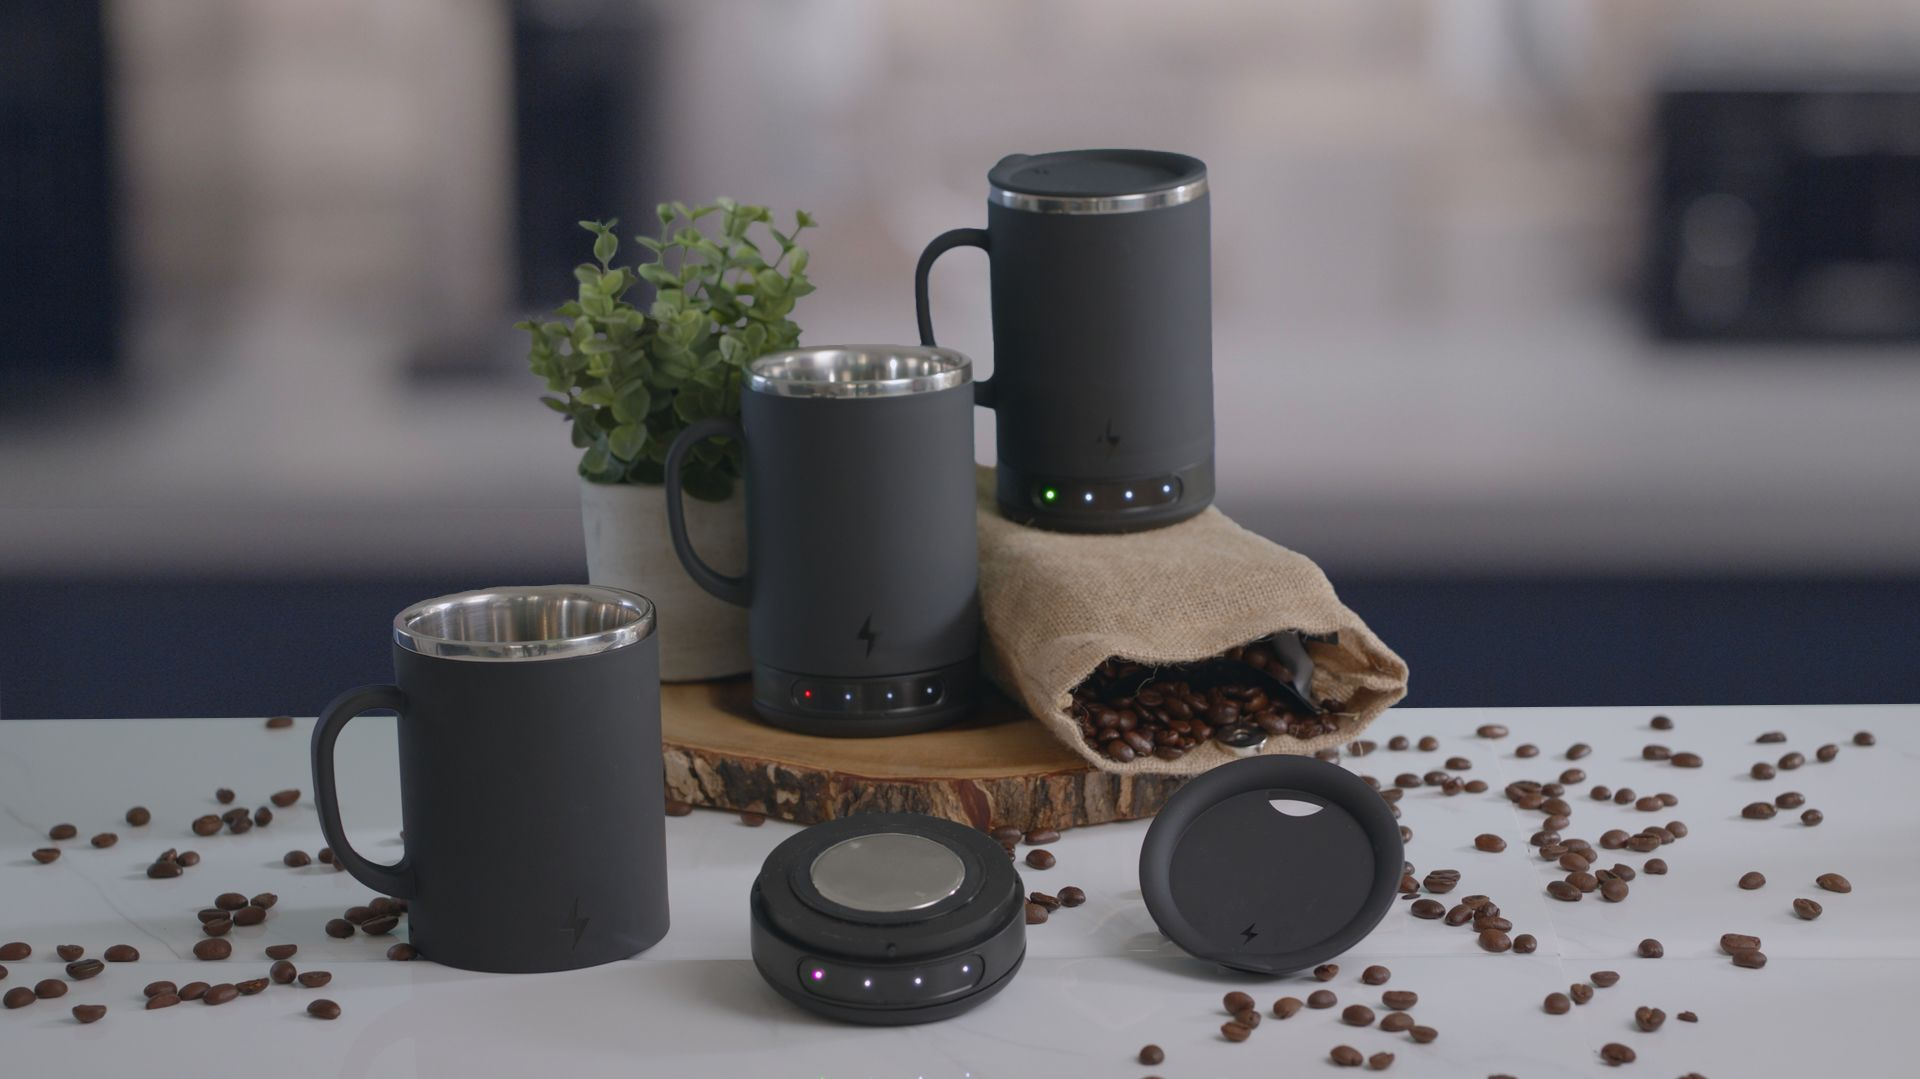 Keep Your Drink Warm for Hours With This Dishwasher-Safe Heated Mug